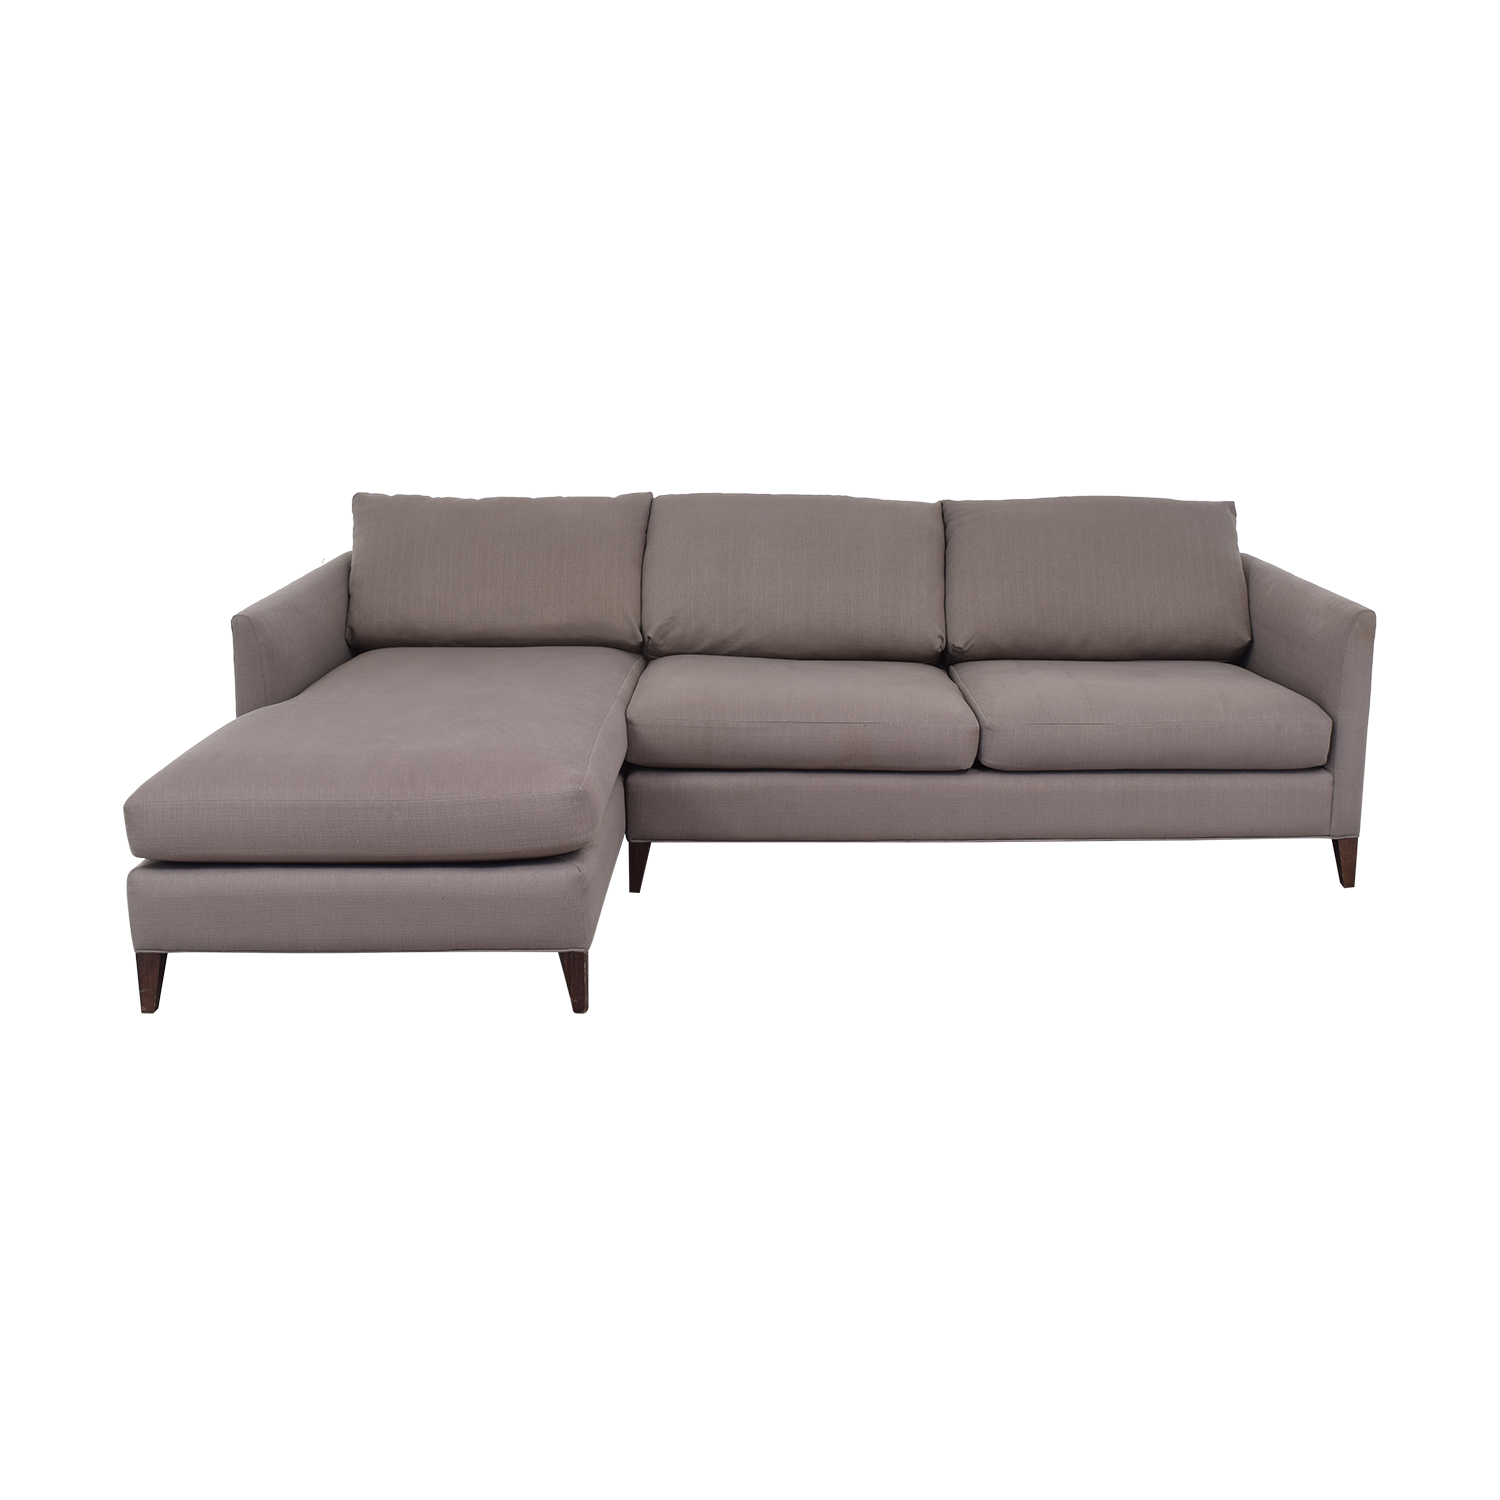 Crate & Barrel Crate & Barrel Lounge Sofa with Chaise second hand